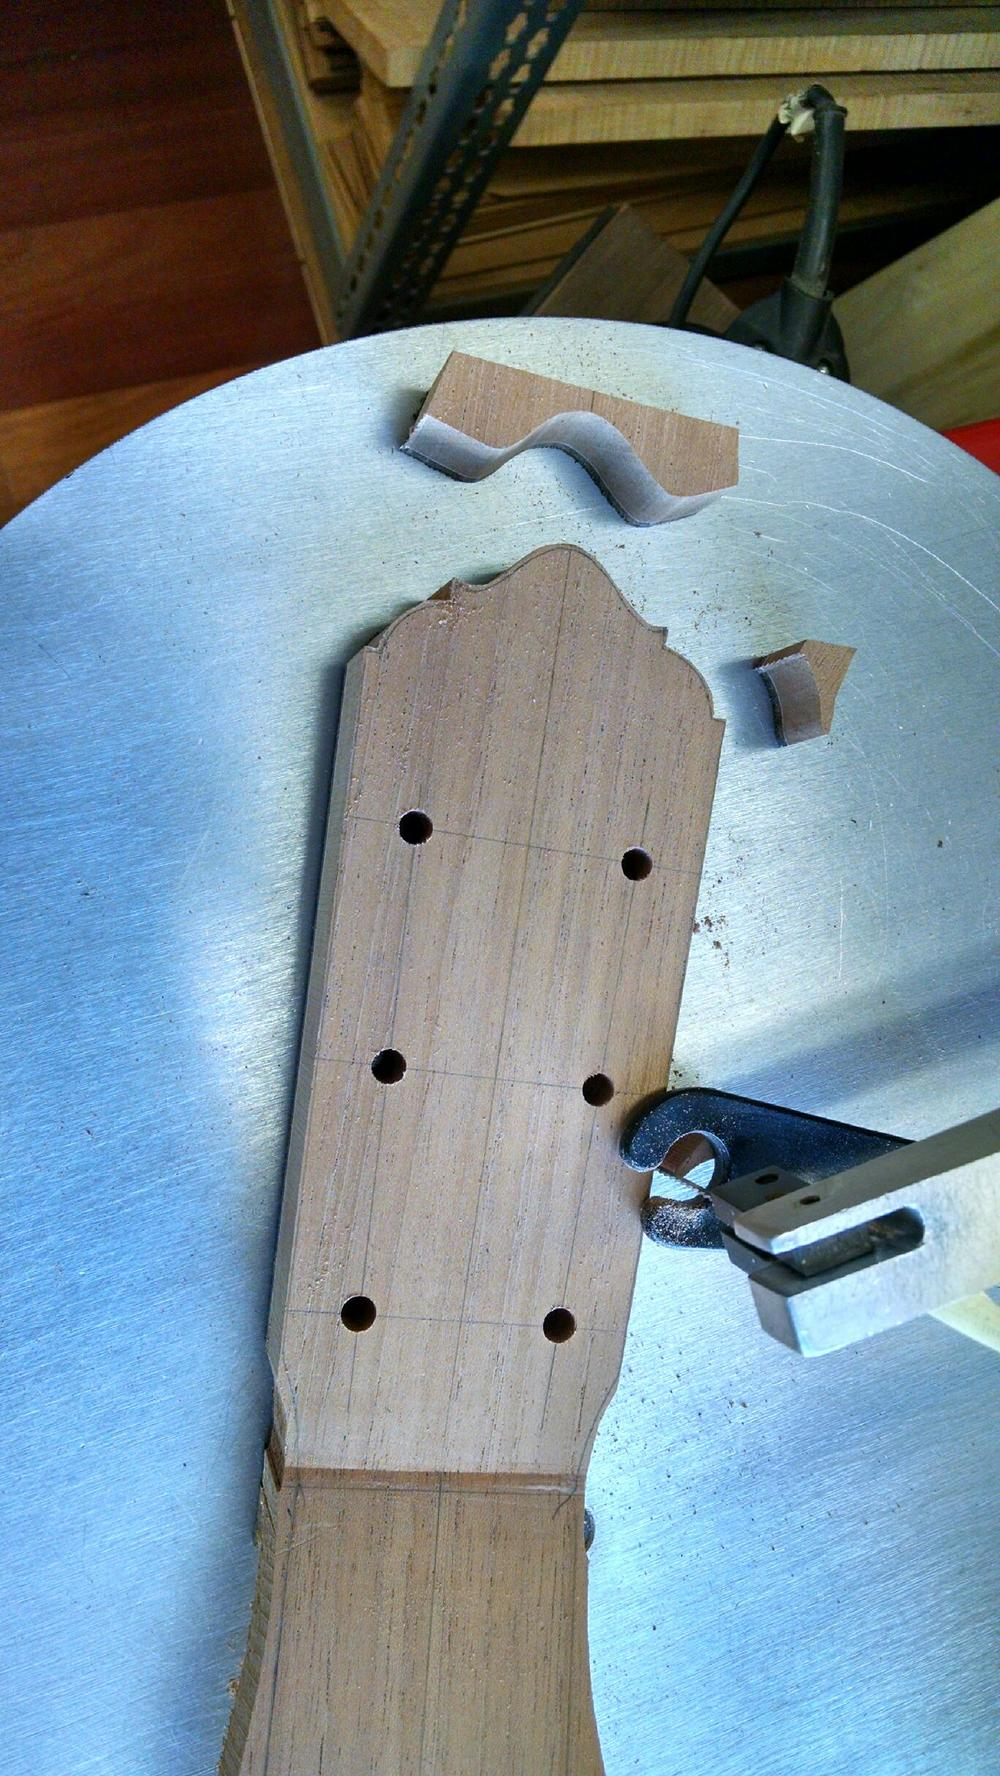 Scroll sawing head design.